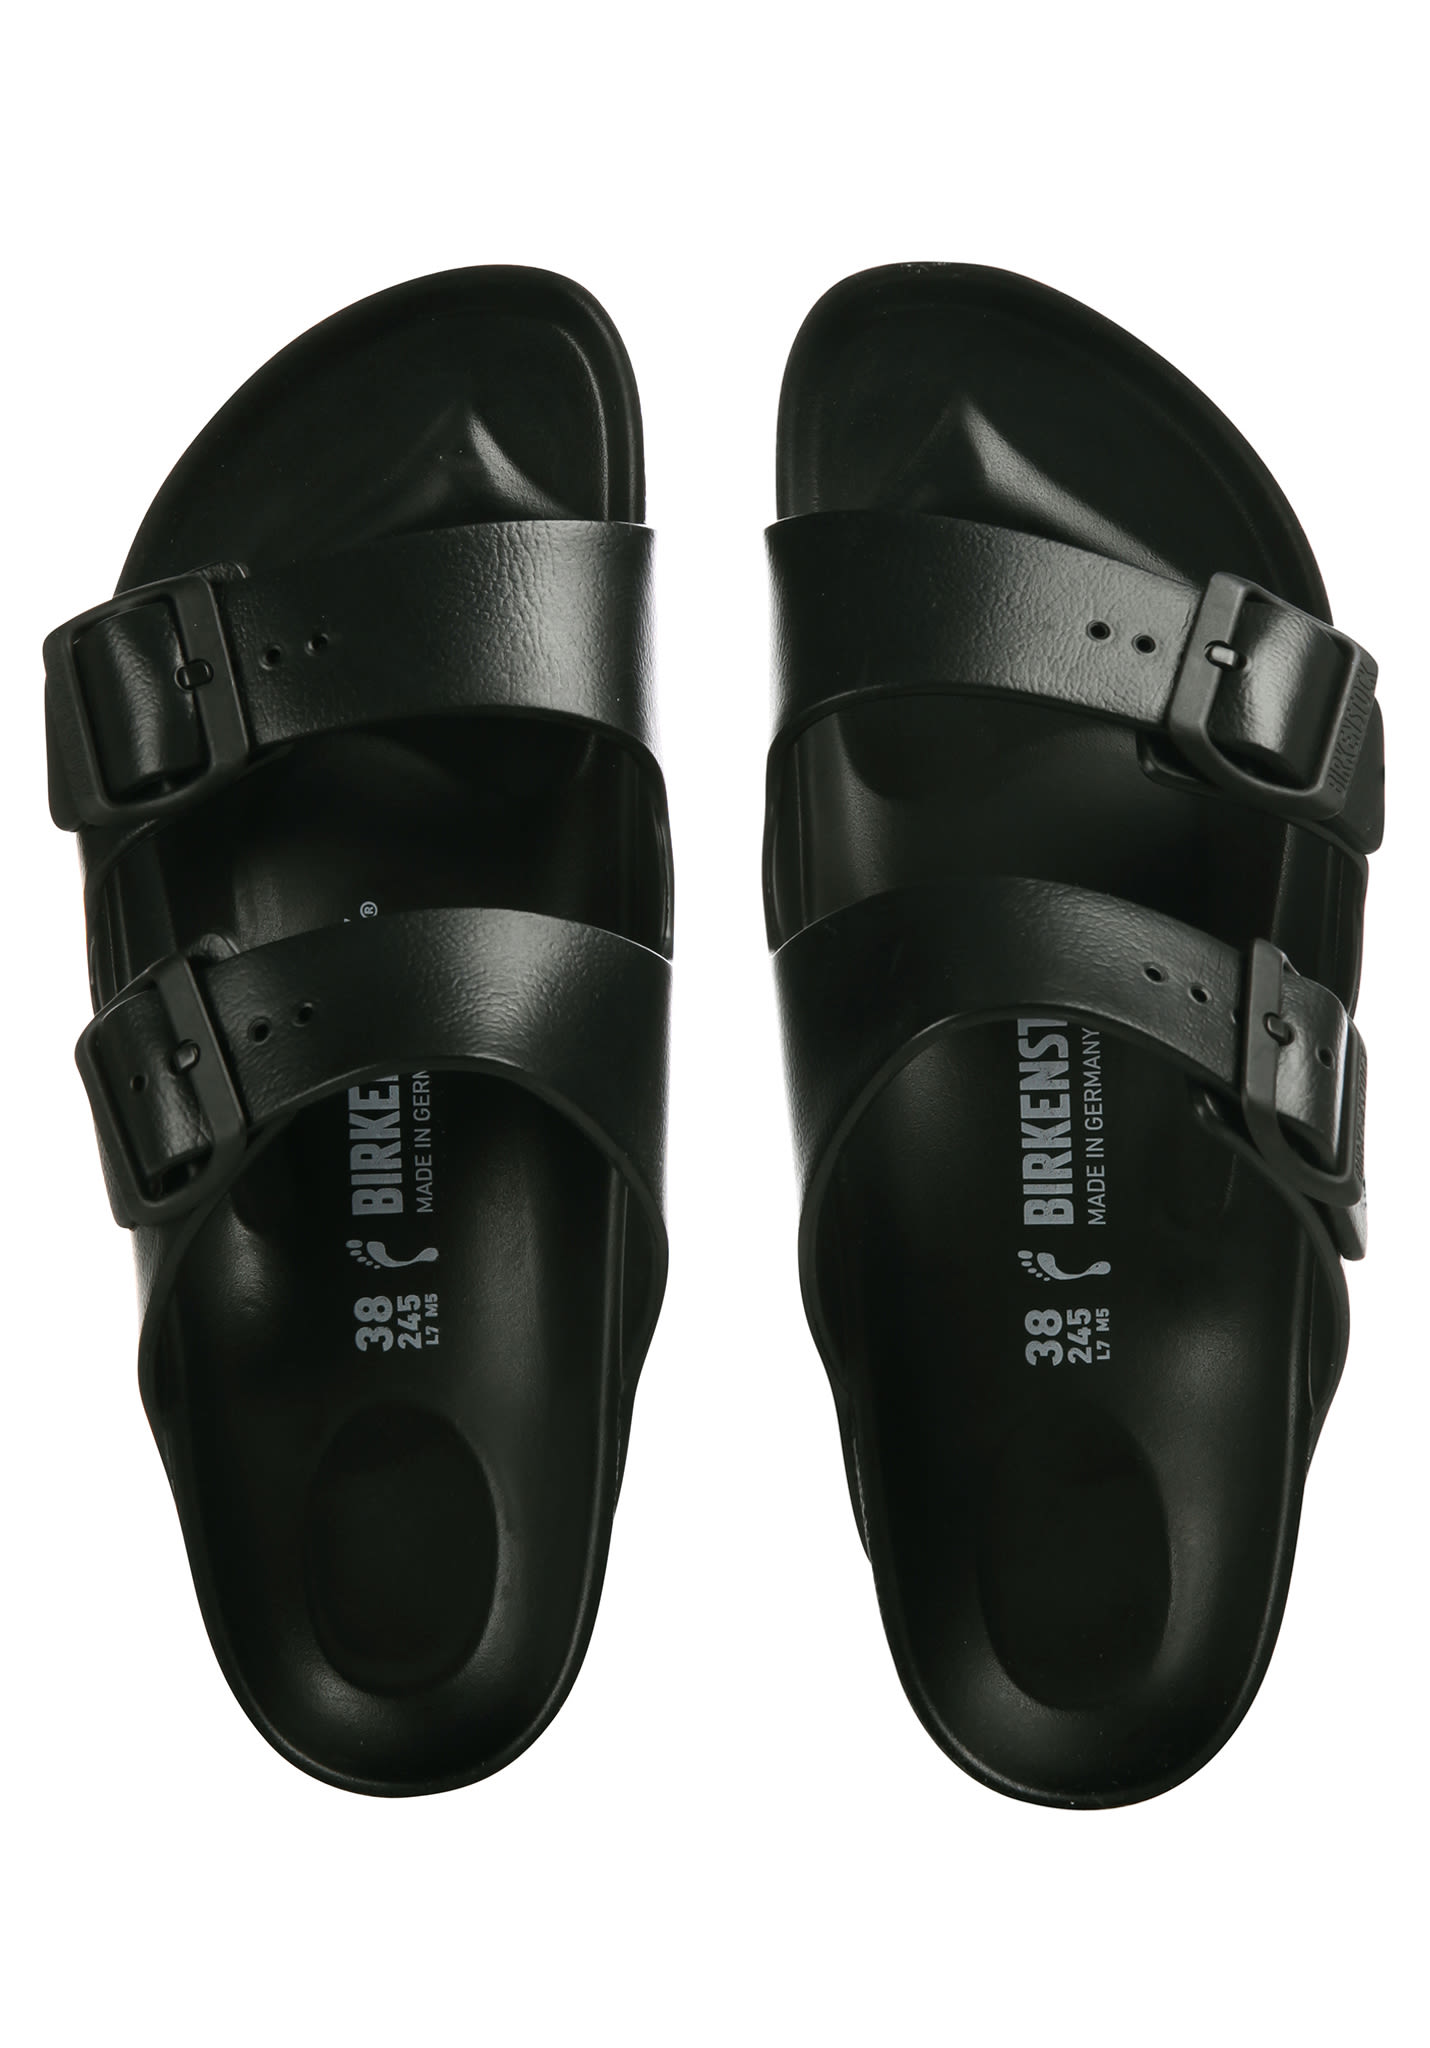 Tongs Noir Eva Arizona Tongs Noir Birkenstock Birkenstock Arizona Eva VpUqzSMG